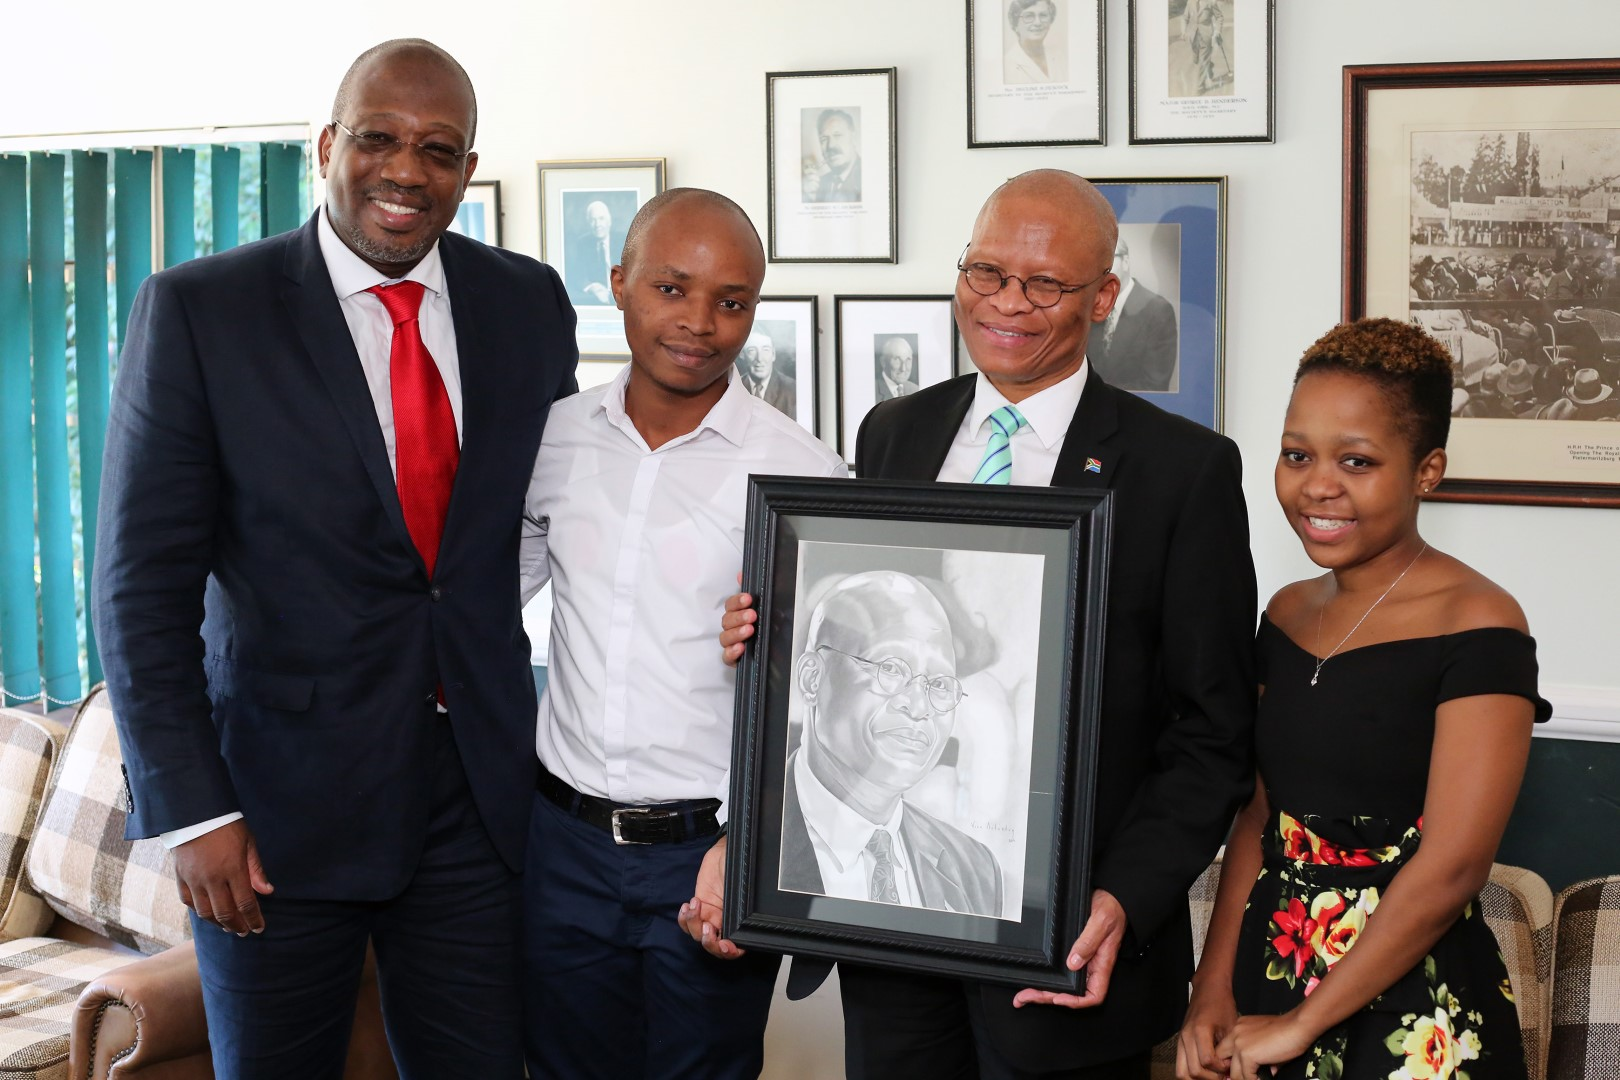 Chancellor Chief Justice Mogoeng Mogoeng together with VC Prof Nana Poku presented with a sketching of himself